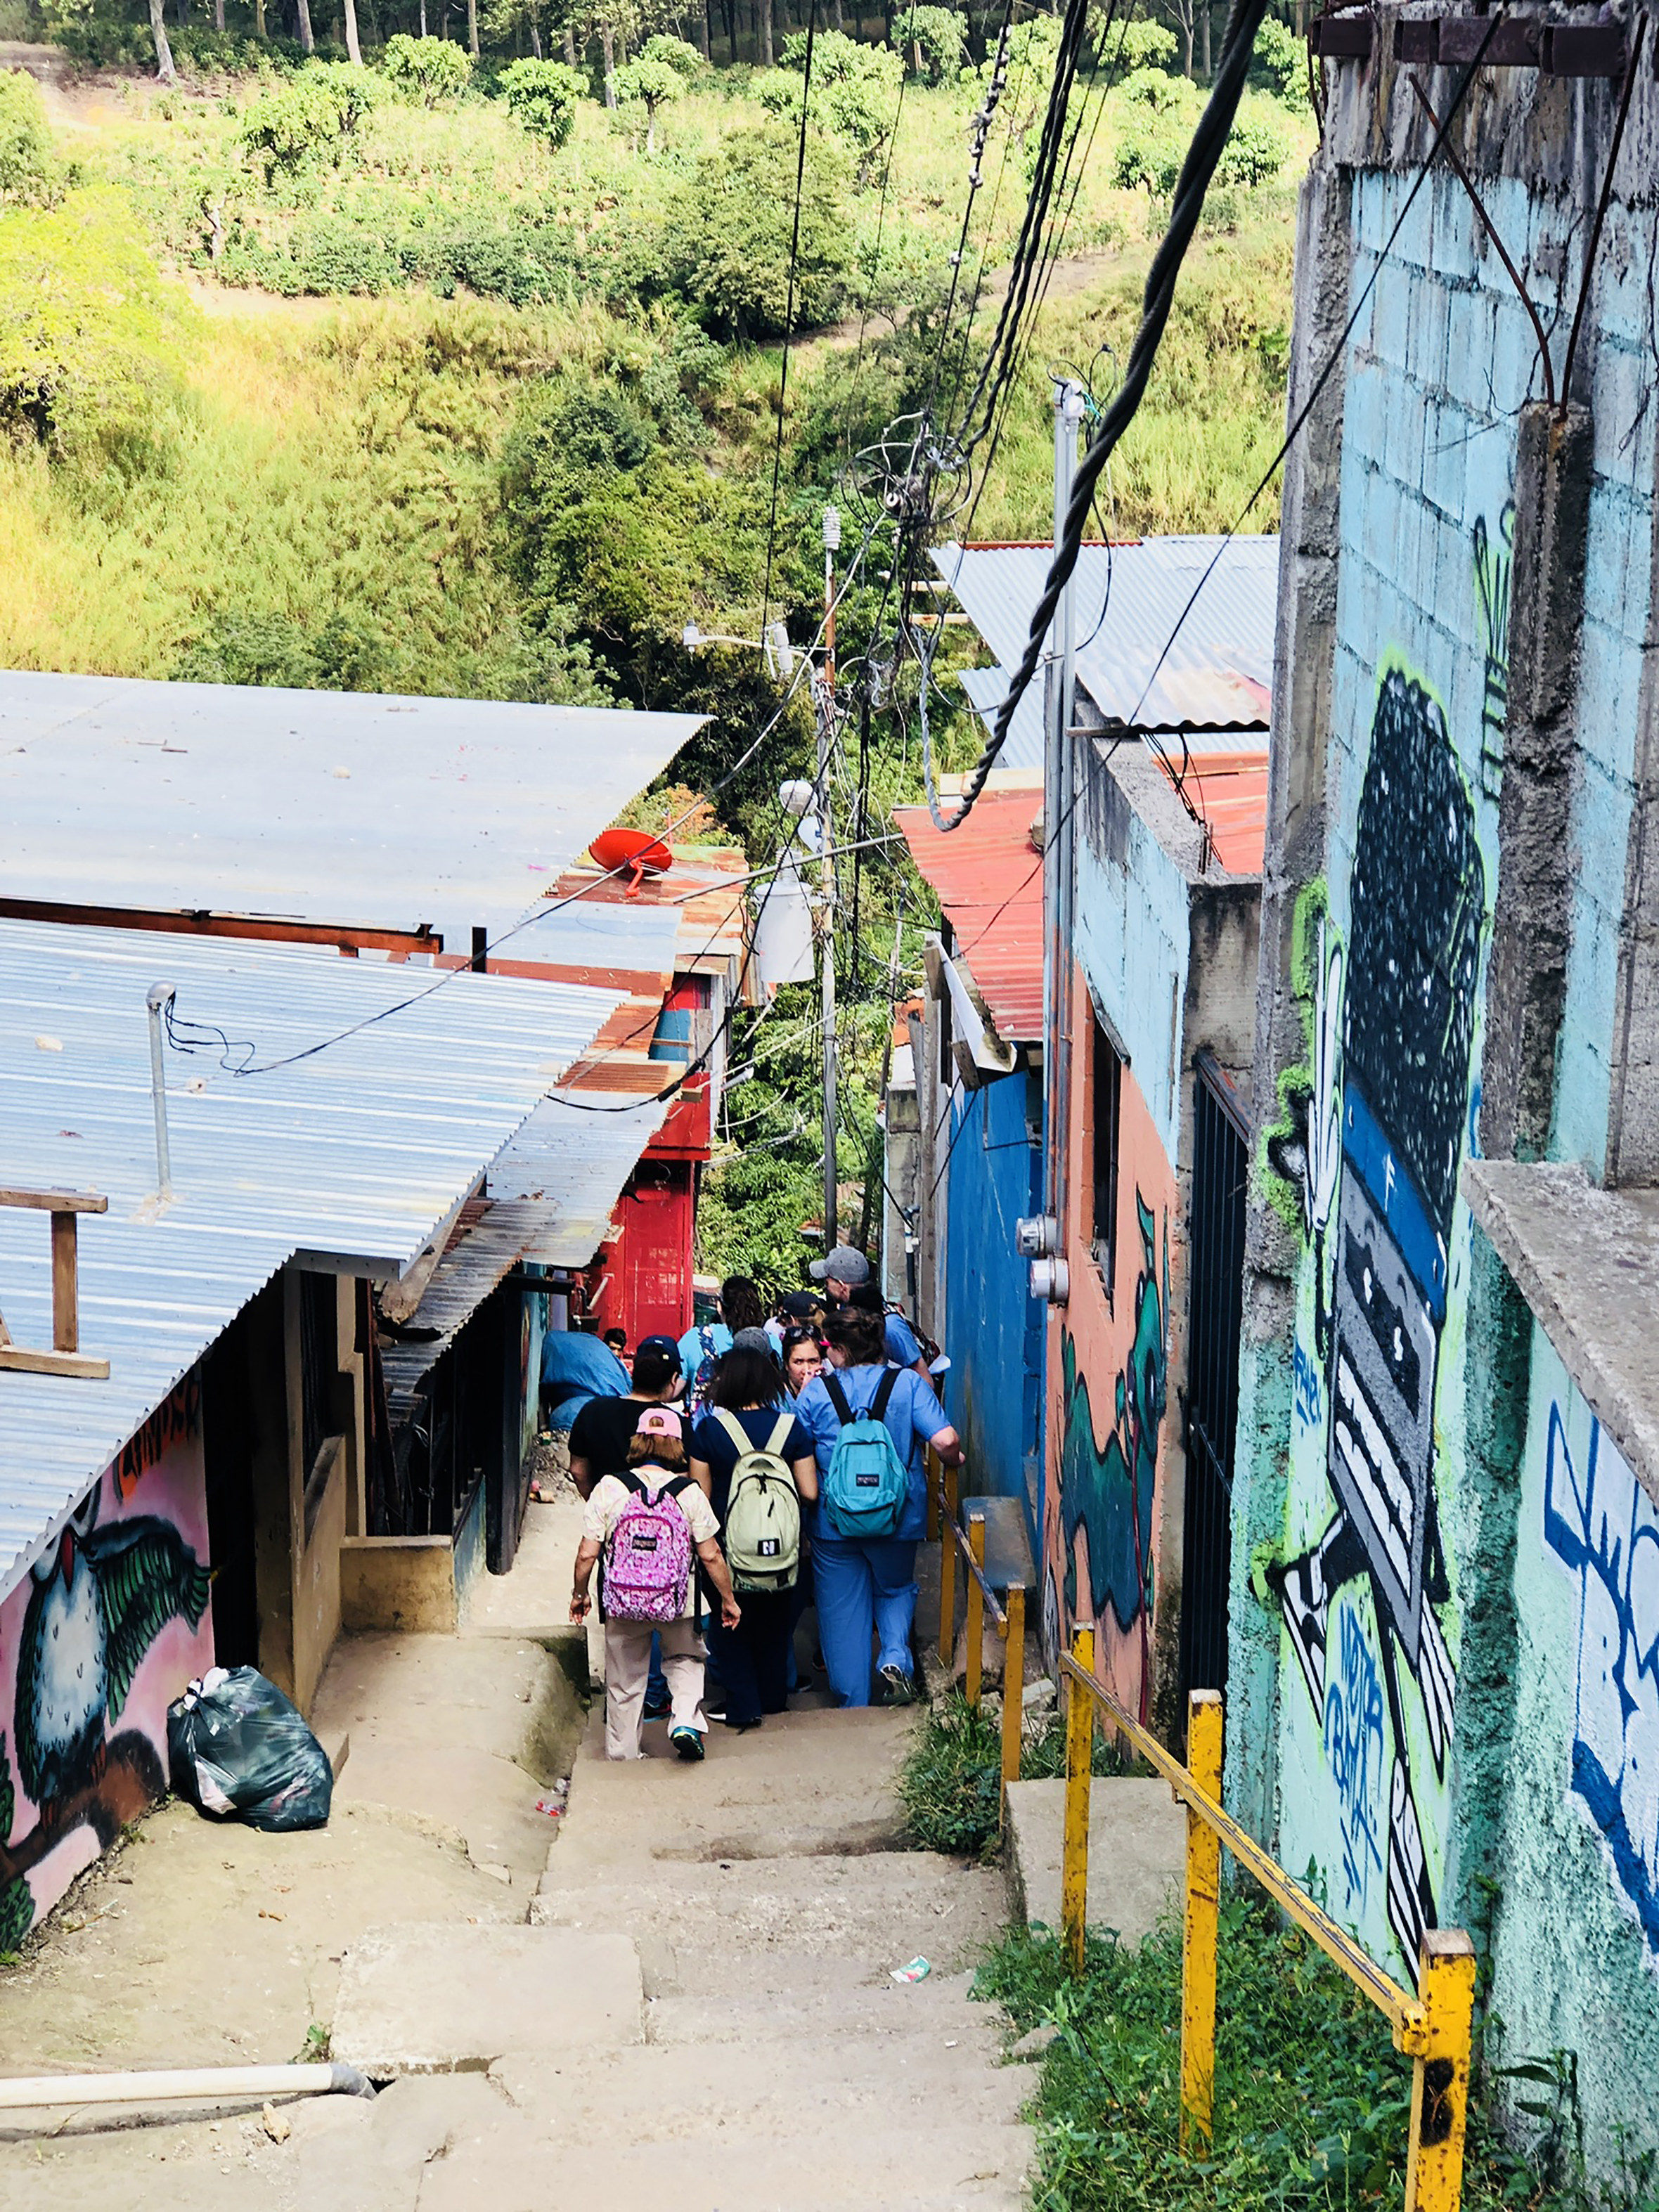 A picture of students walking in a narrow way between houses in Costa Rica